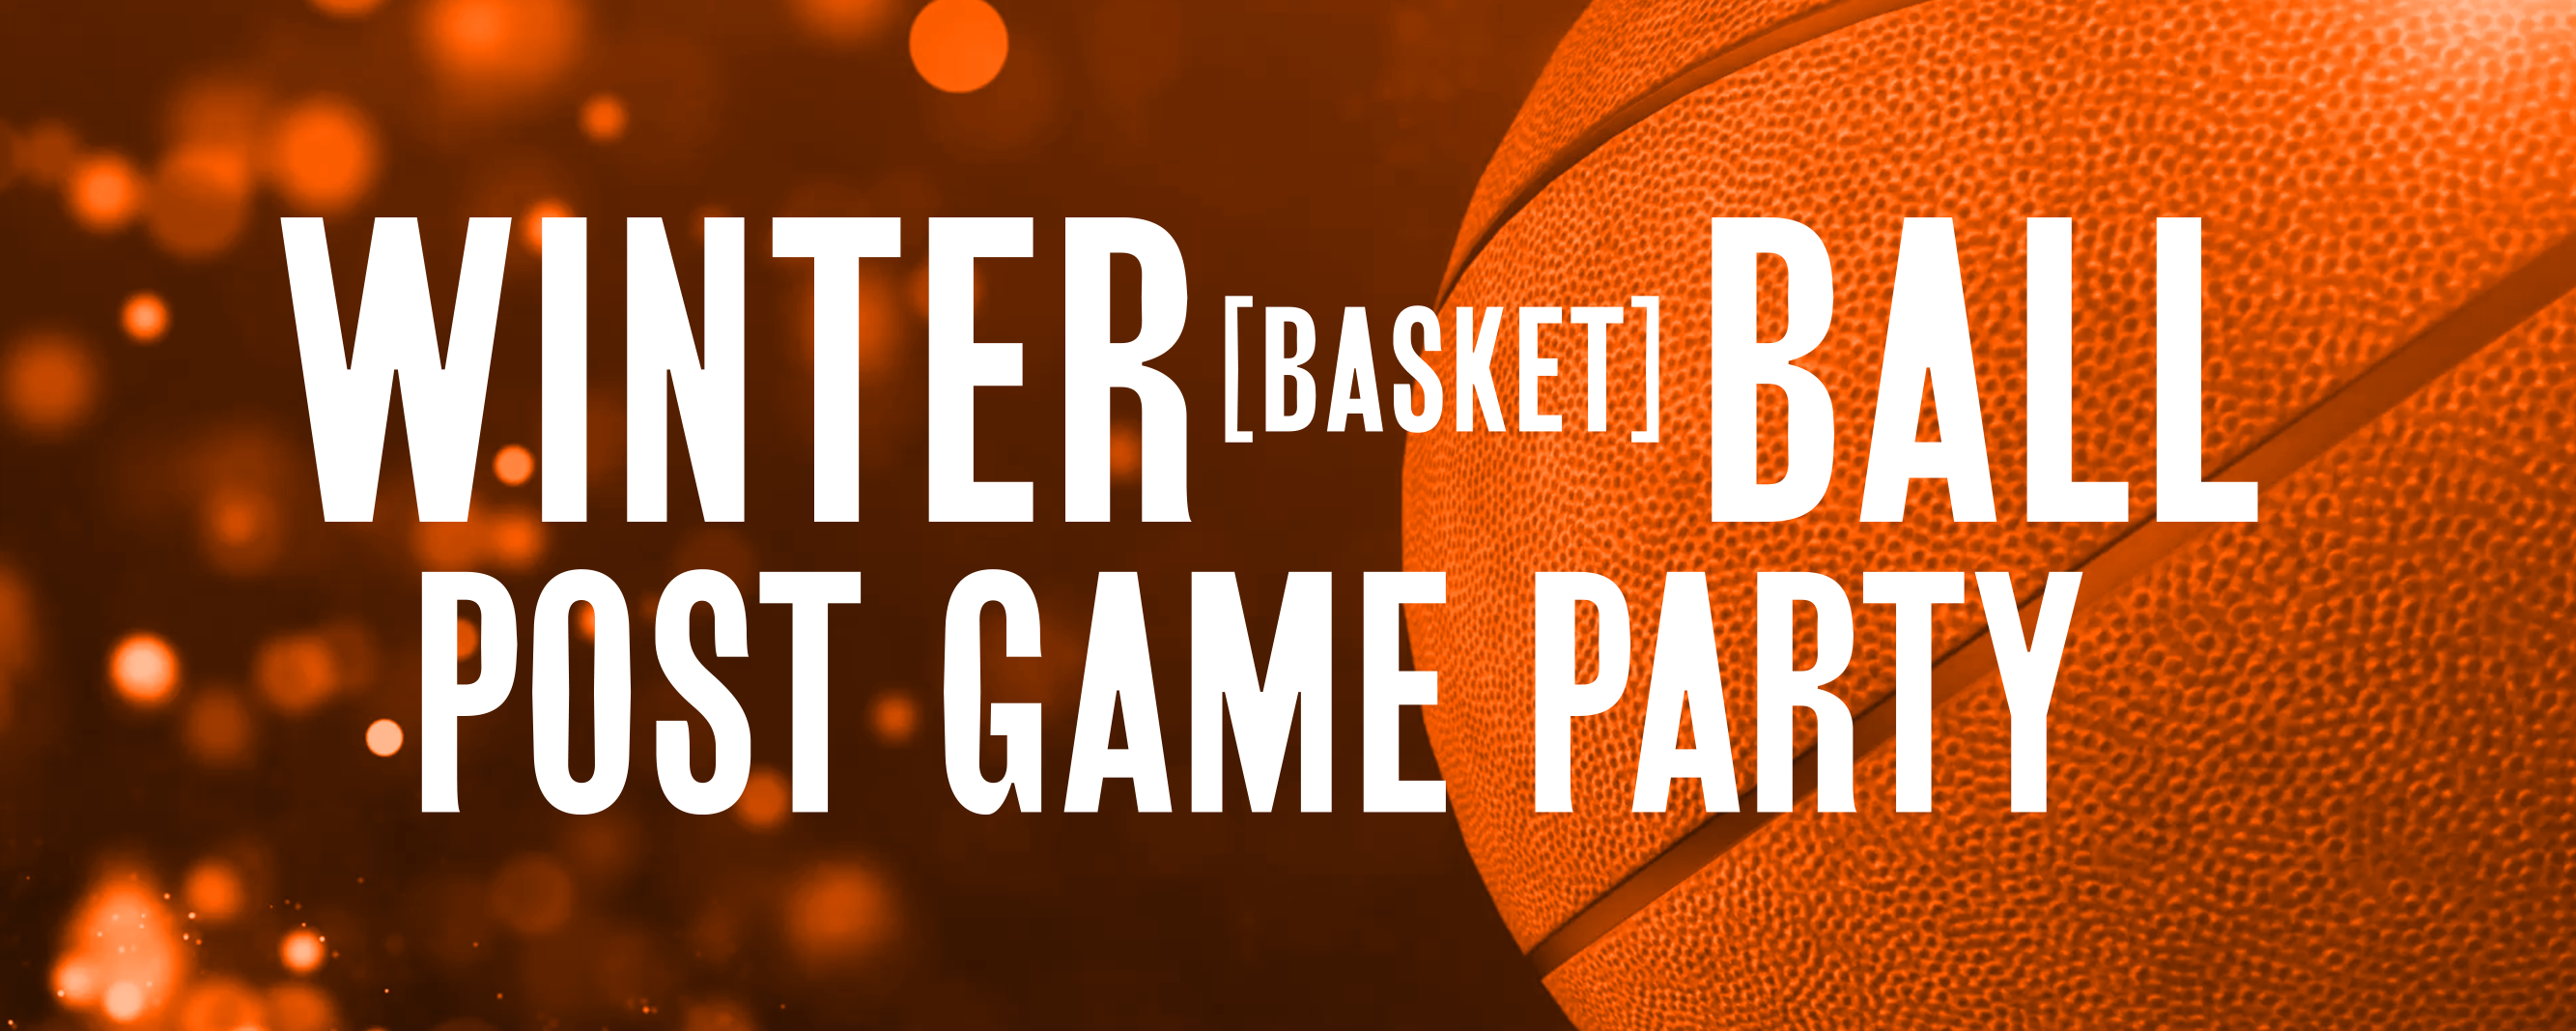 a banner image for Winter Basket Ball Post Game Party